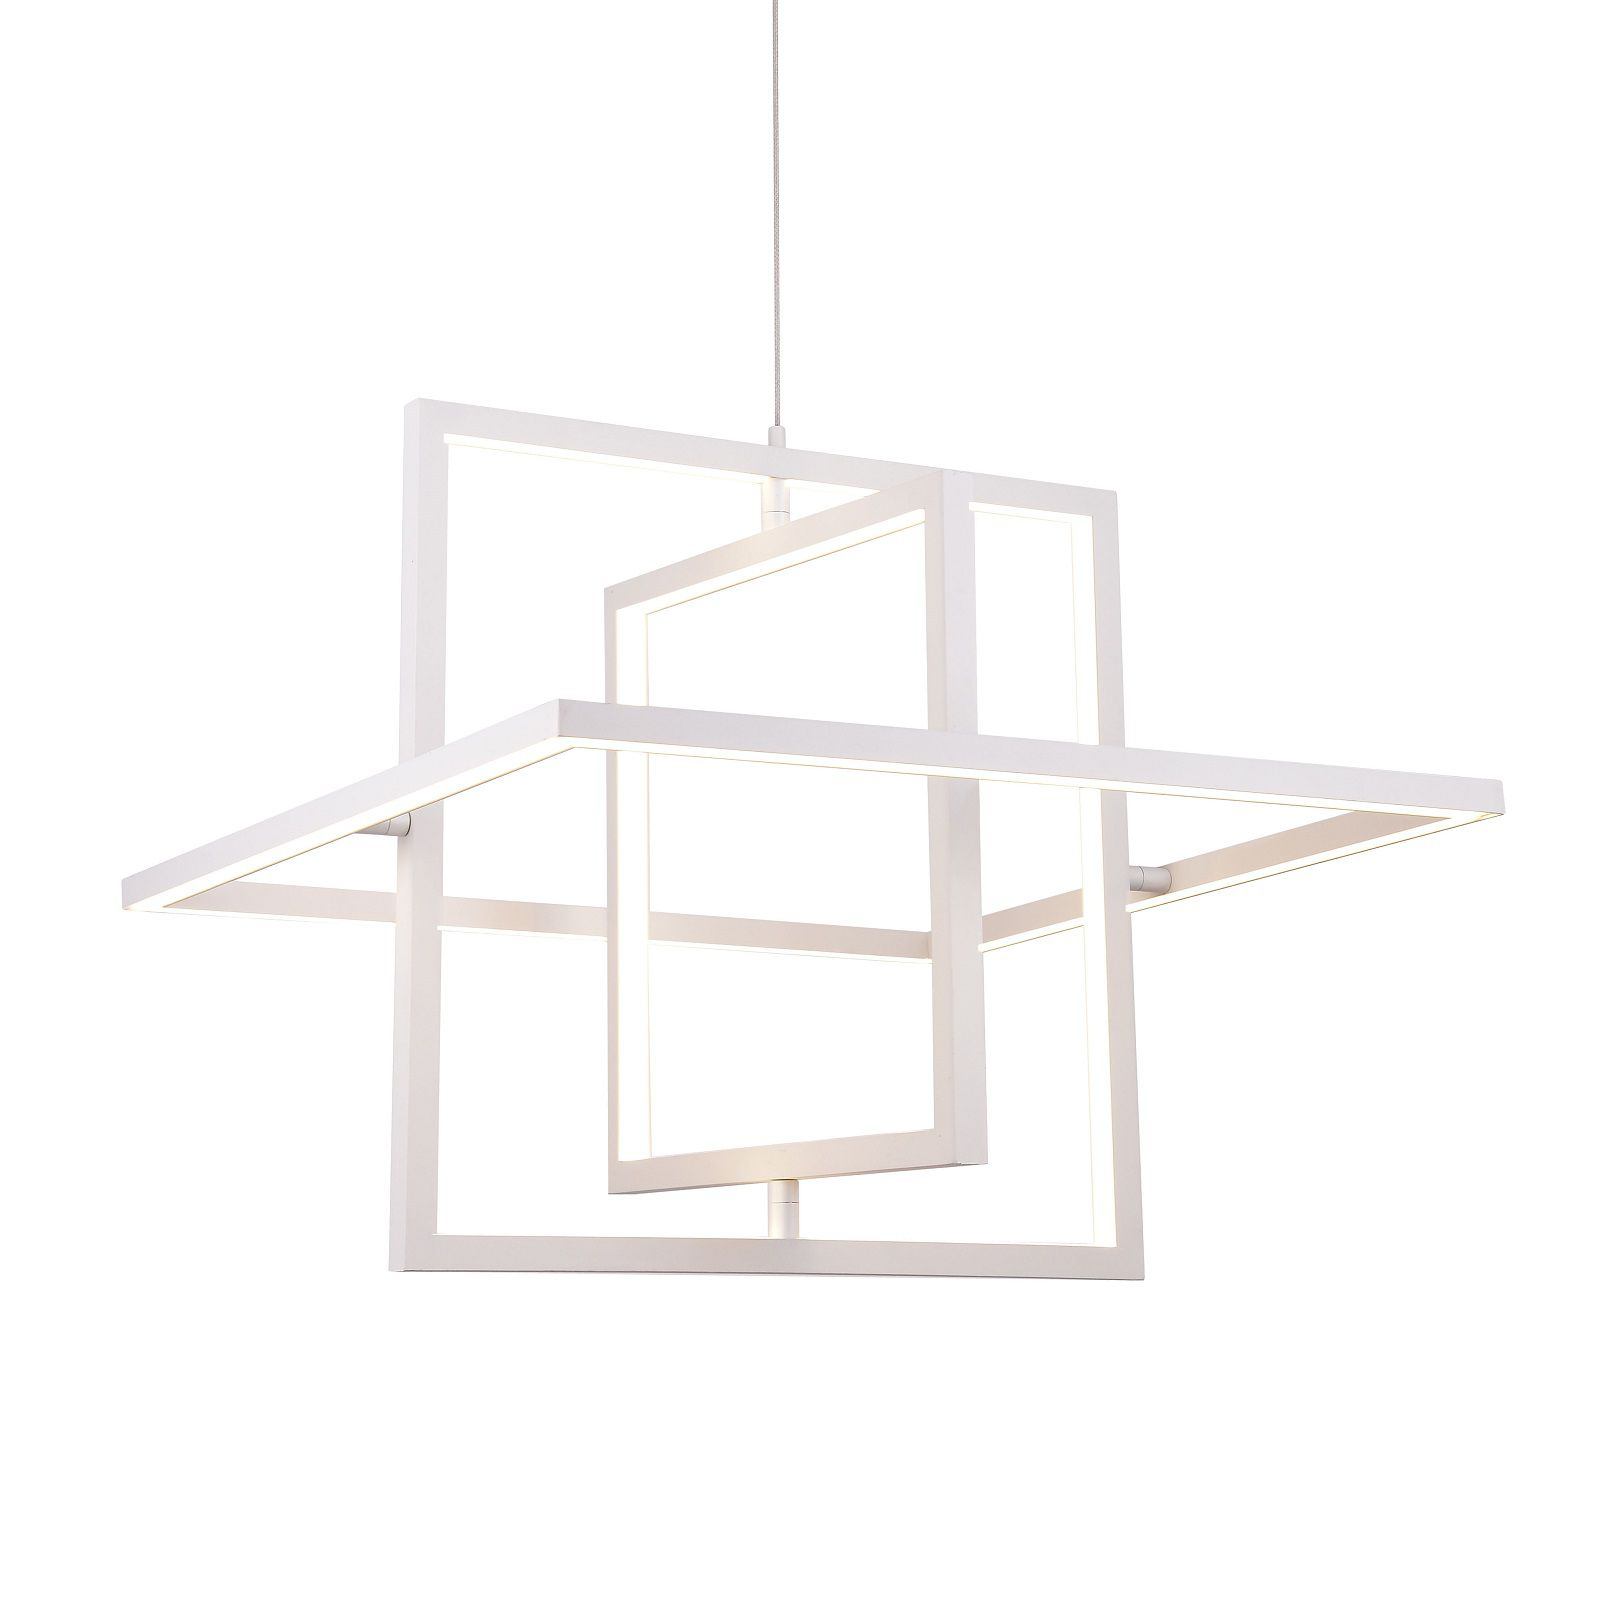 Pendente LED Casual Light Quality PD1243-BR Square 32W 3000K Bivolt  Ø500x500mm Branco